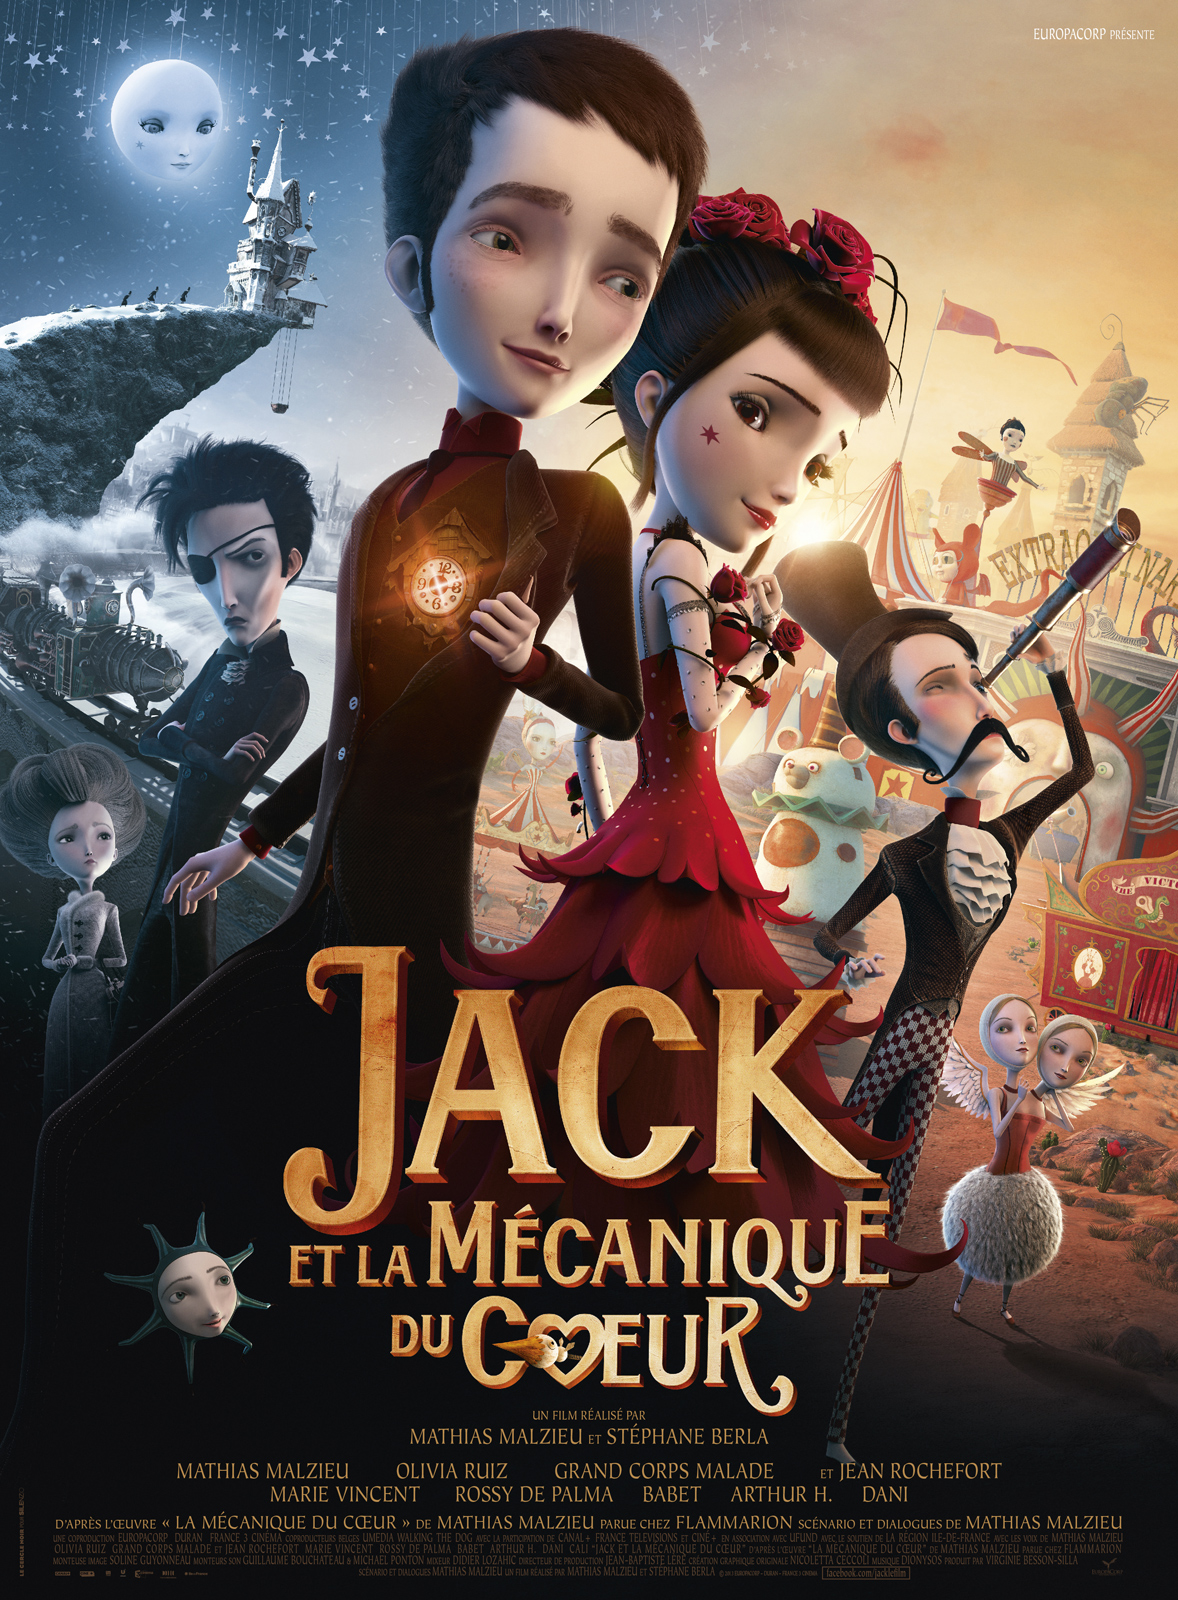 Jack et la m�canique du coeur | Multi | DVDRiP | 2013 | FRENCH 1CD